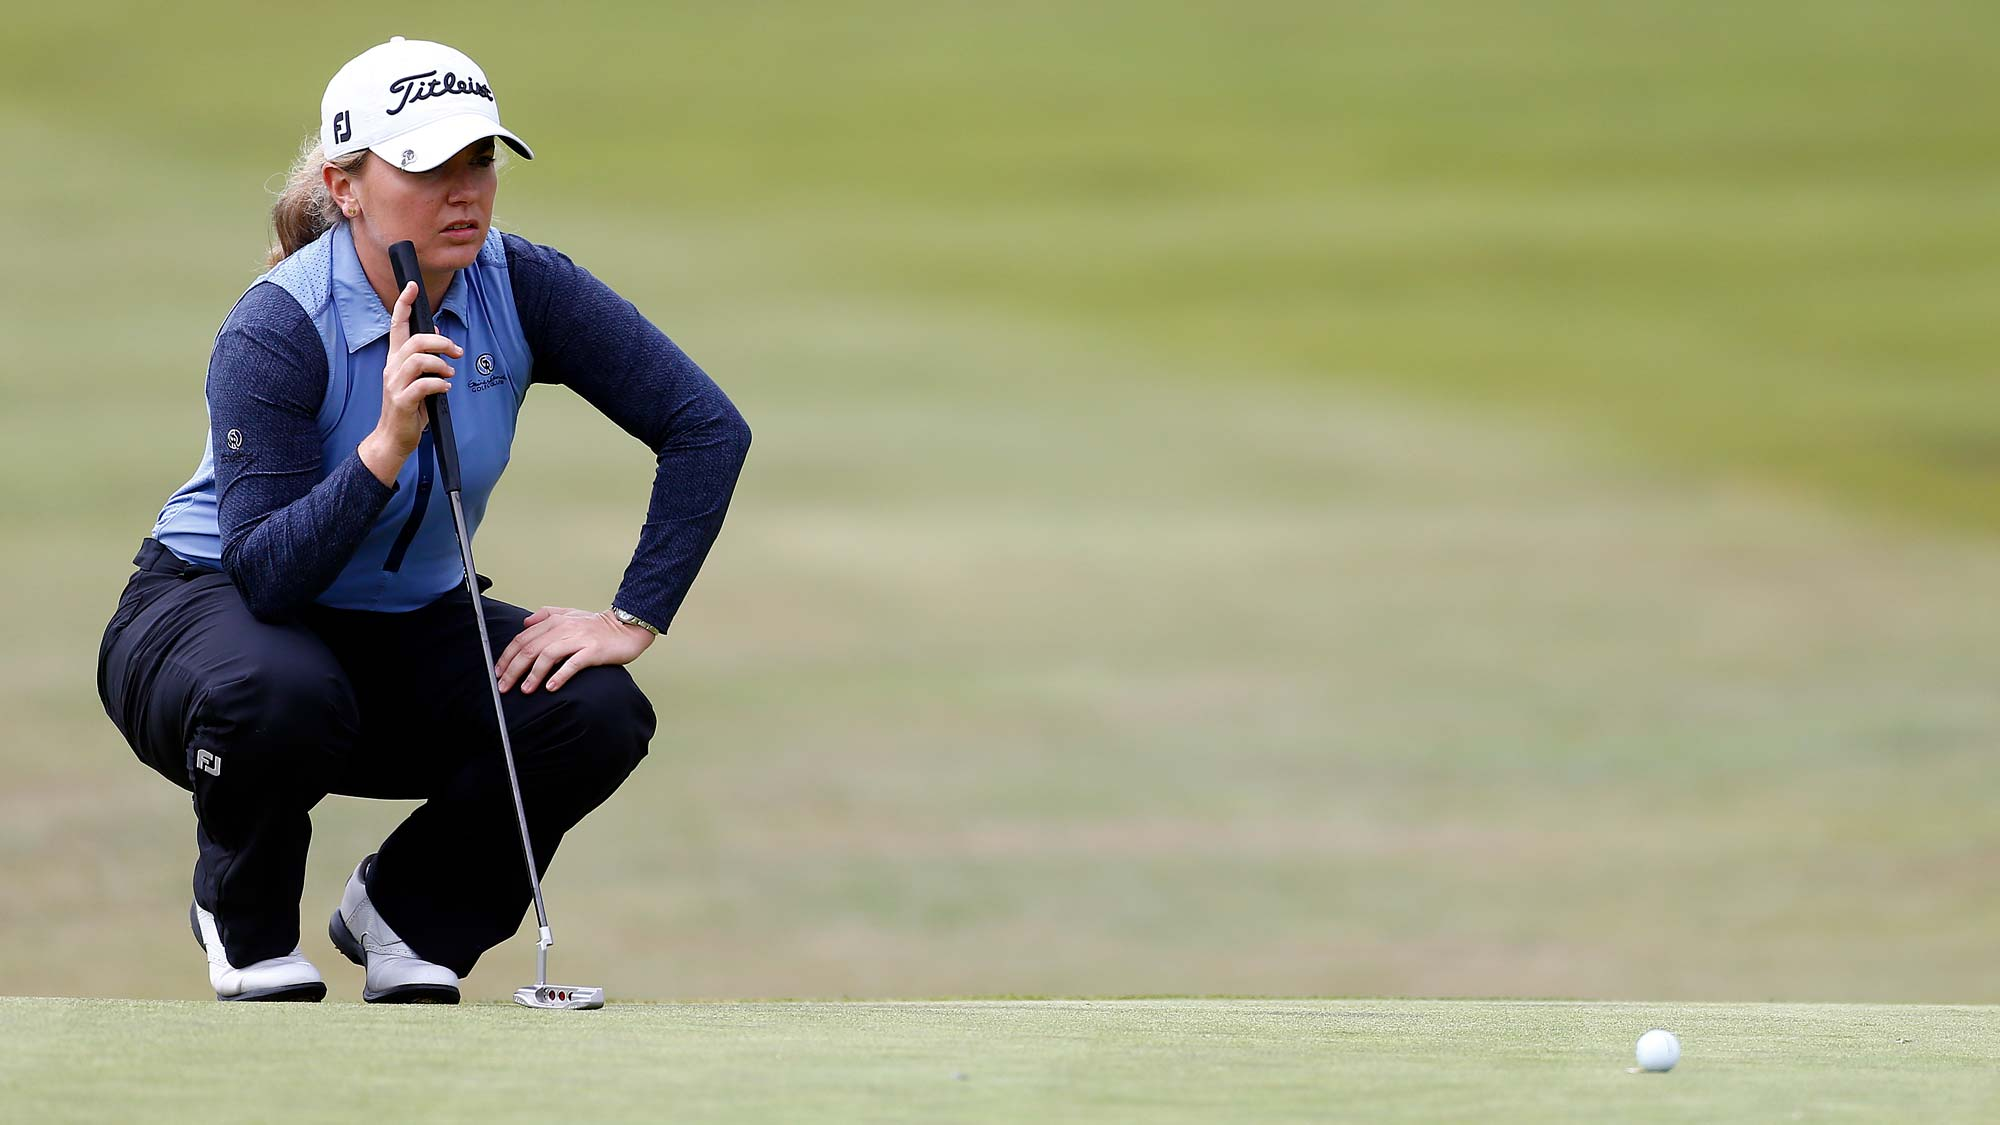 Bronte Law of England lines up a putt after on the 18th green during the final round of the LPGA Mediheal Championship